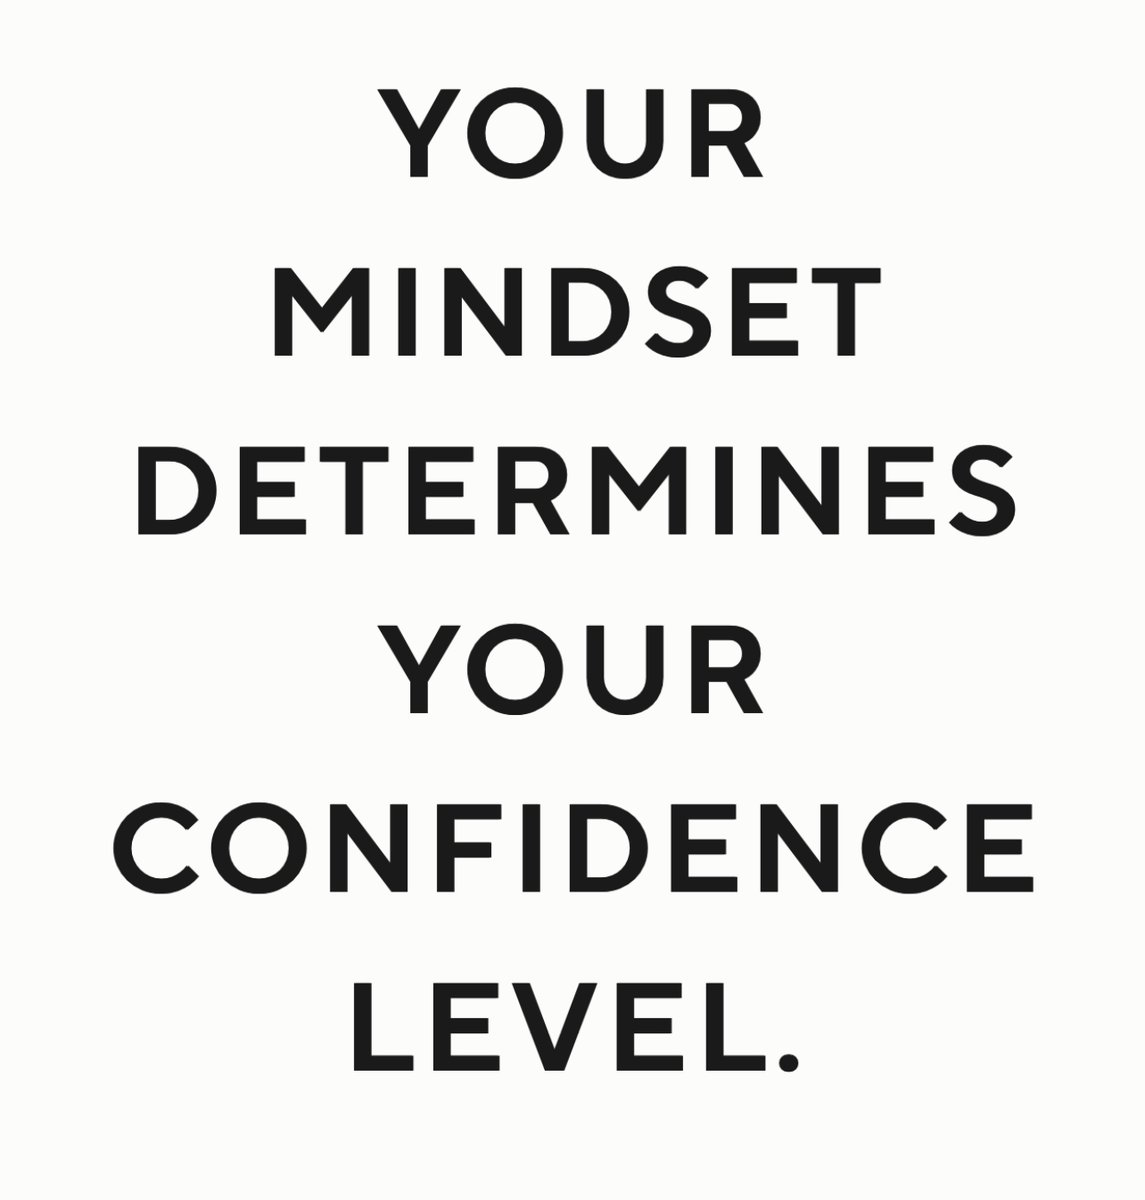 Just a thought for you! #happytuesday #homesmart #angieserna #angiedoesitagain #mindset #2021 #bossbabe